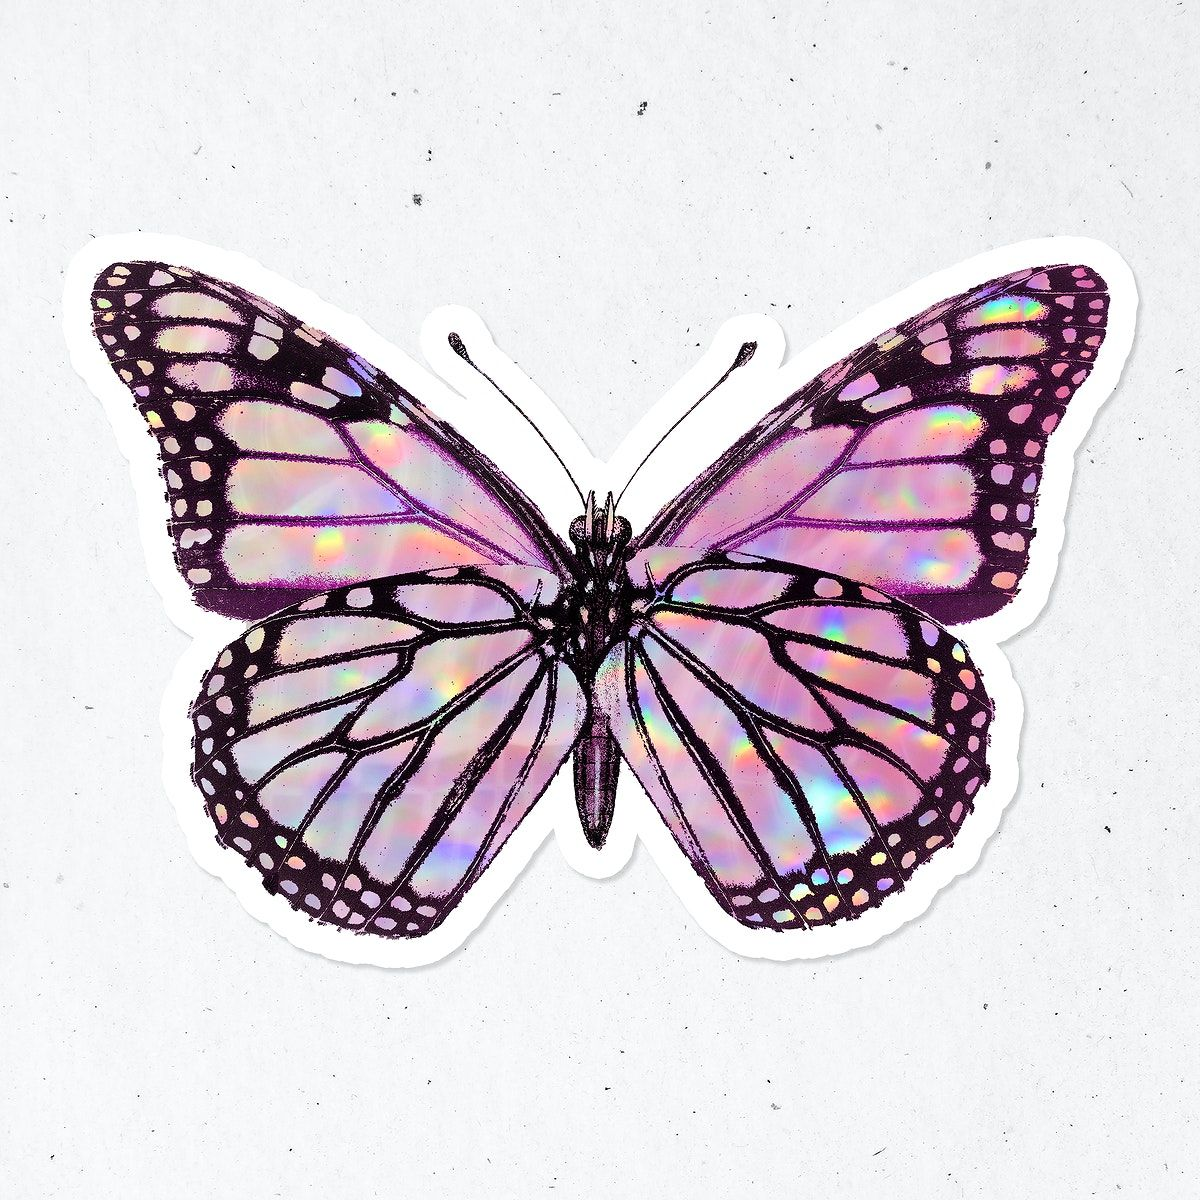 Pink holographic Monarch butterfly with a white border sticker | premium image by rawpixel.com / nunny